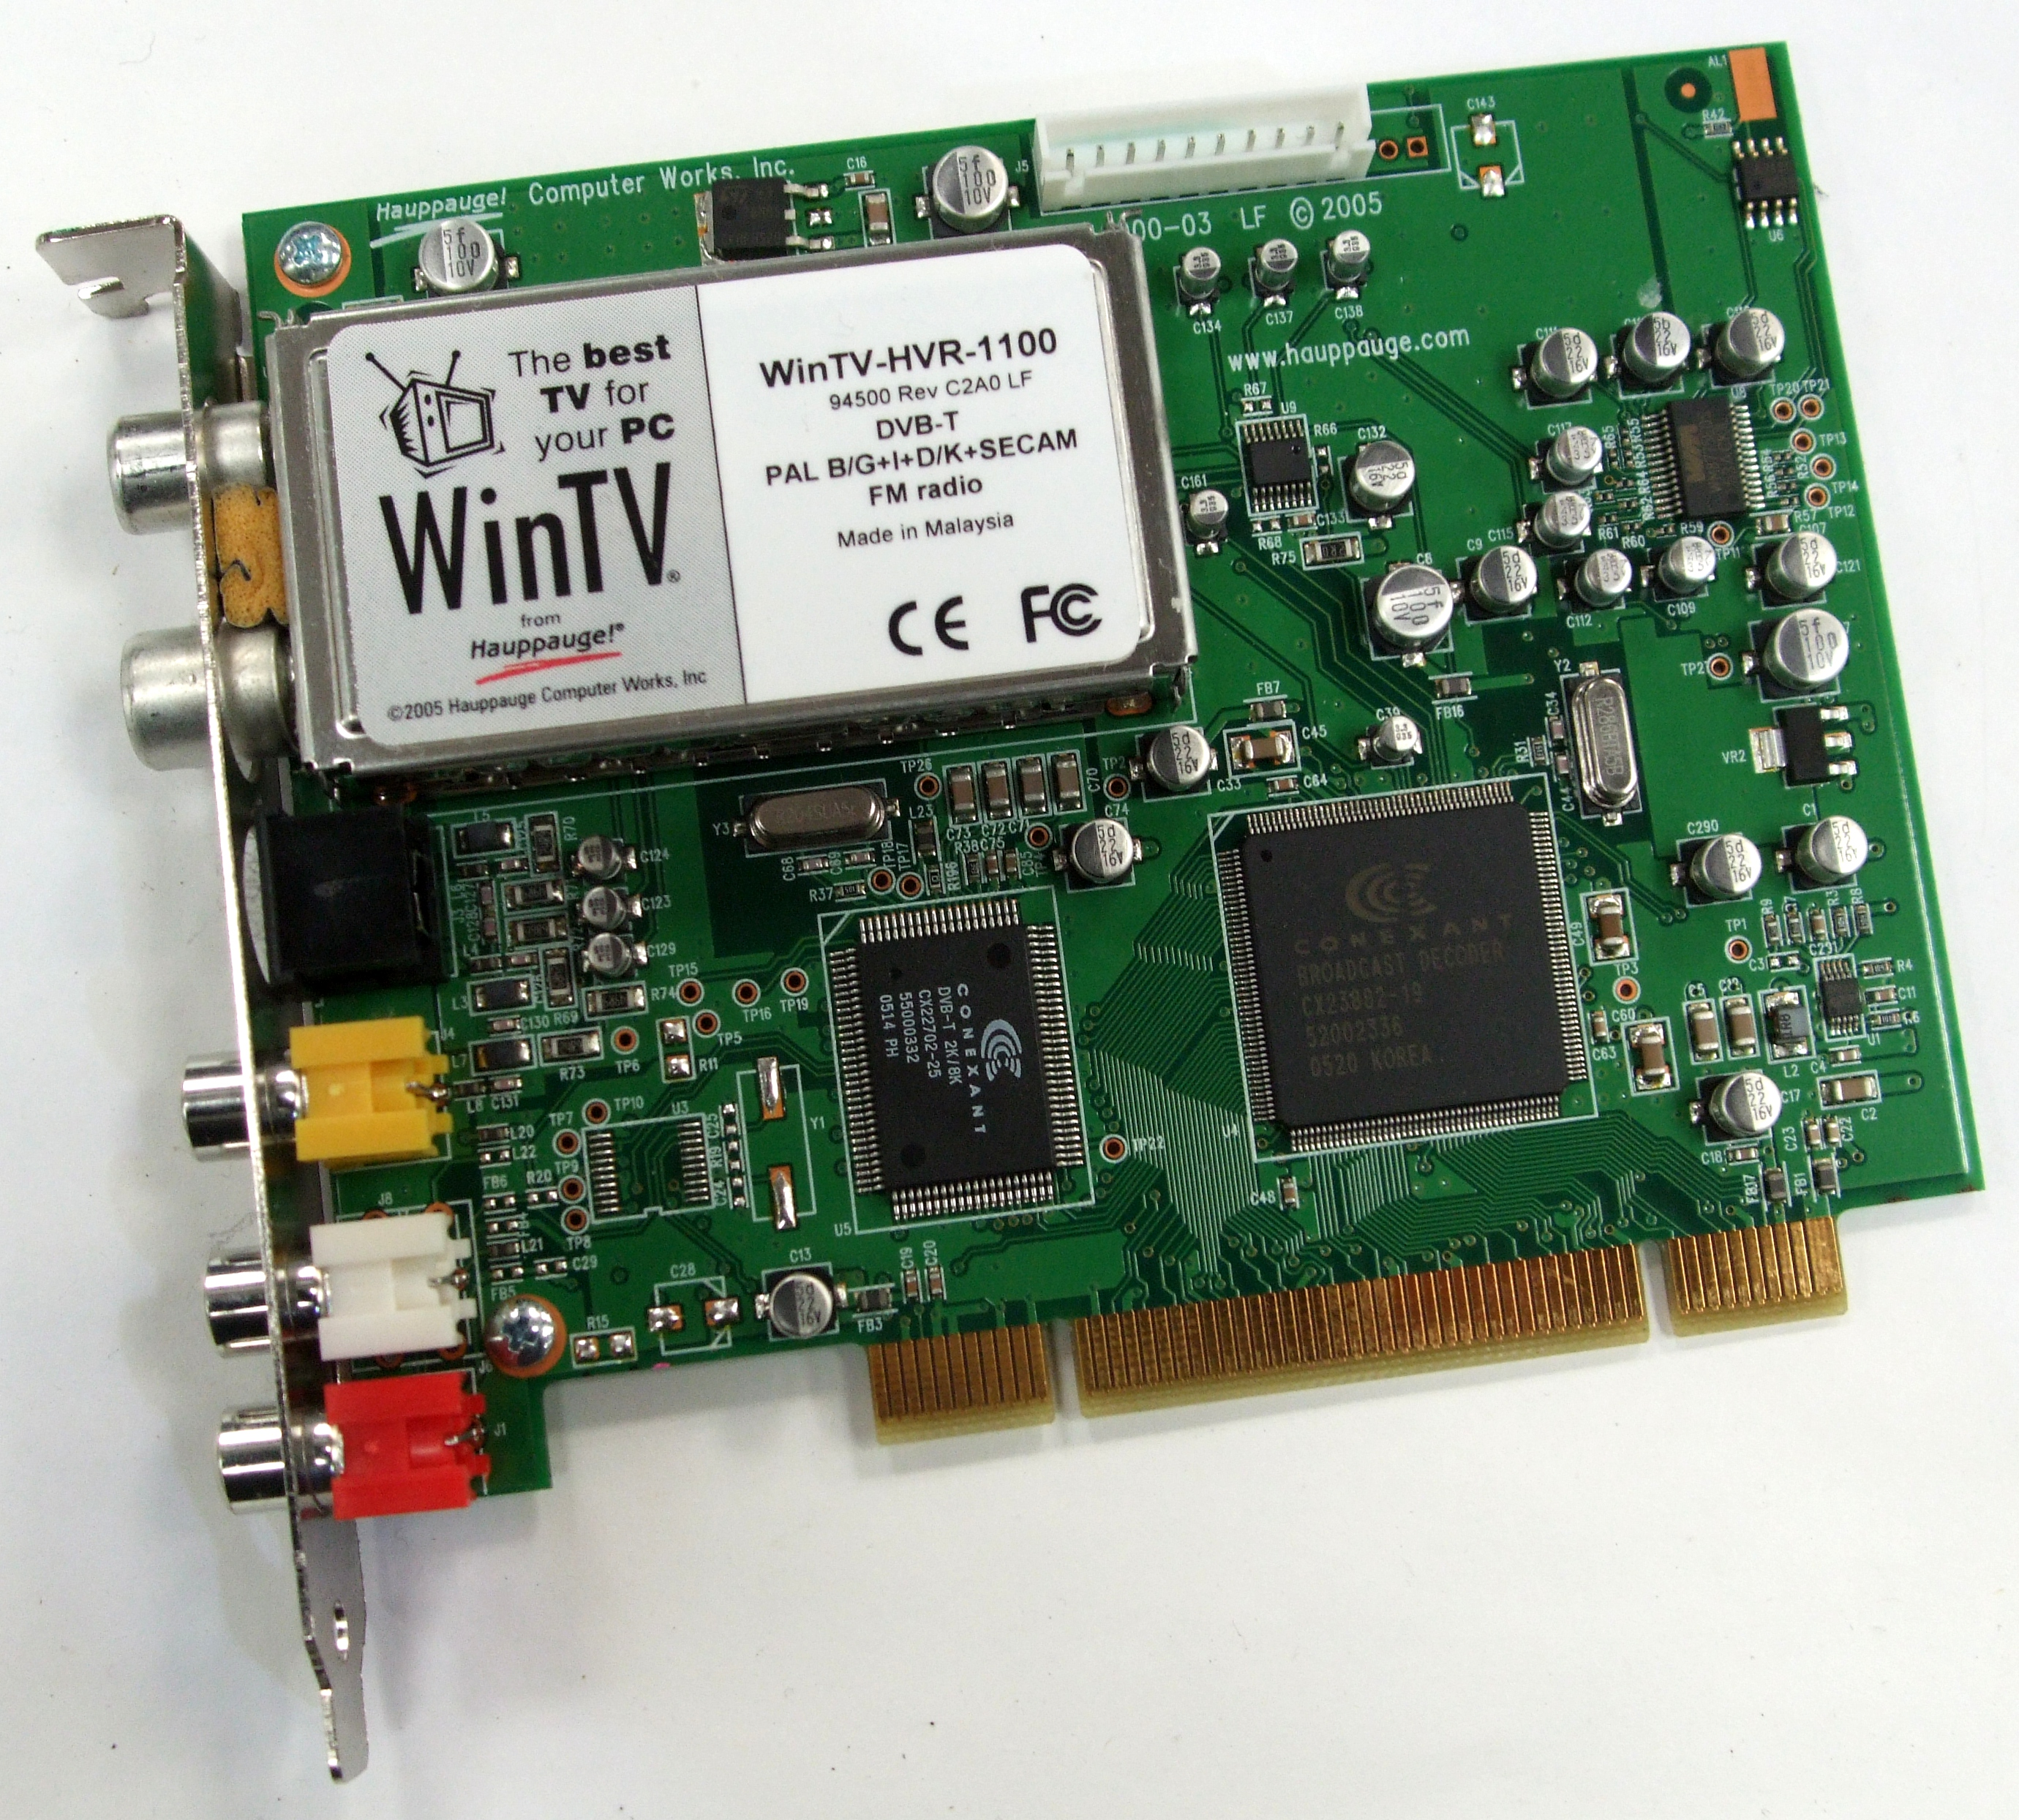 WinTV-HVR-1100 Hauppauge Standard Profile PCI DVB-T Digital TV Tuner Card Enlarged Preview